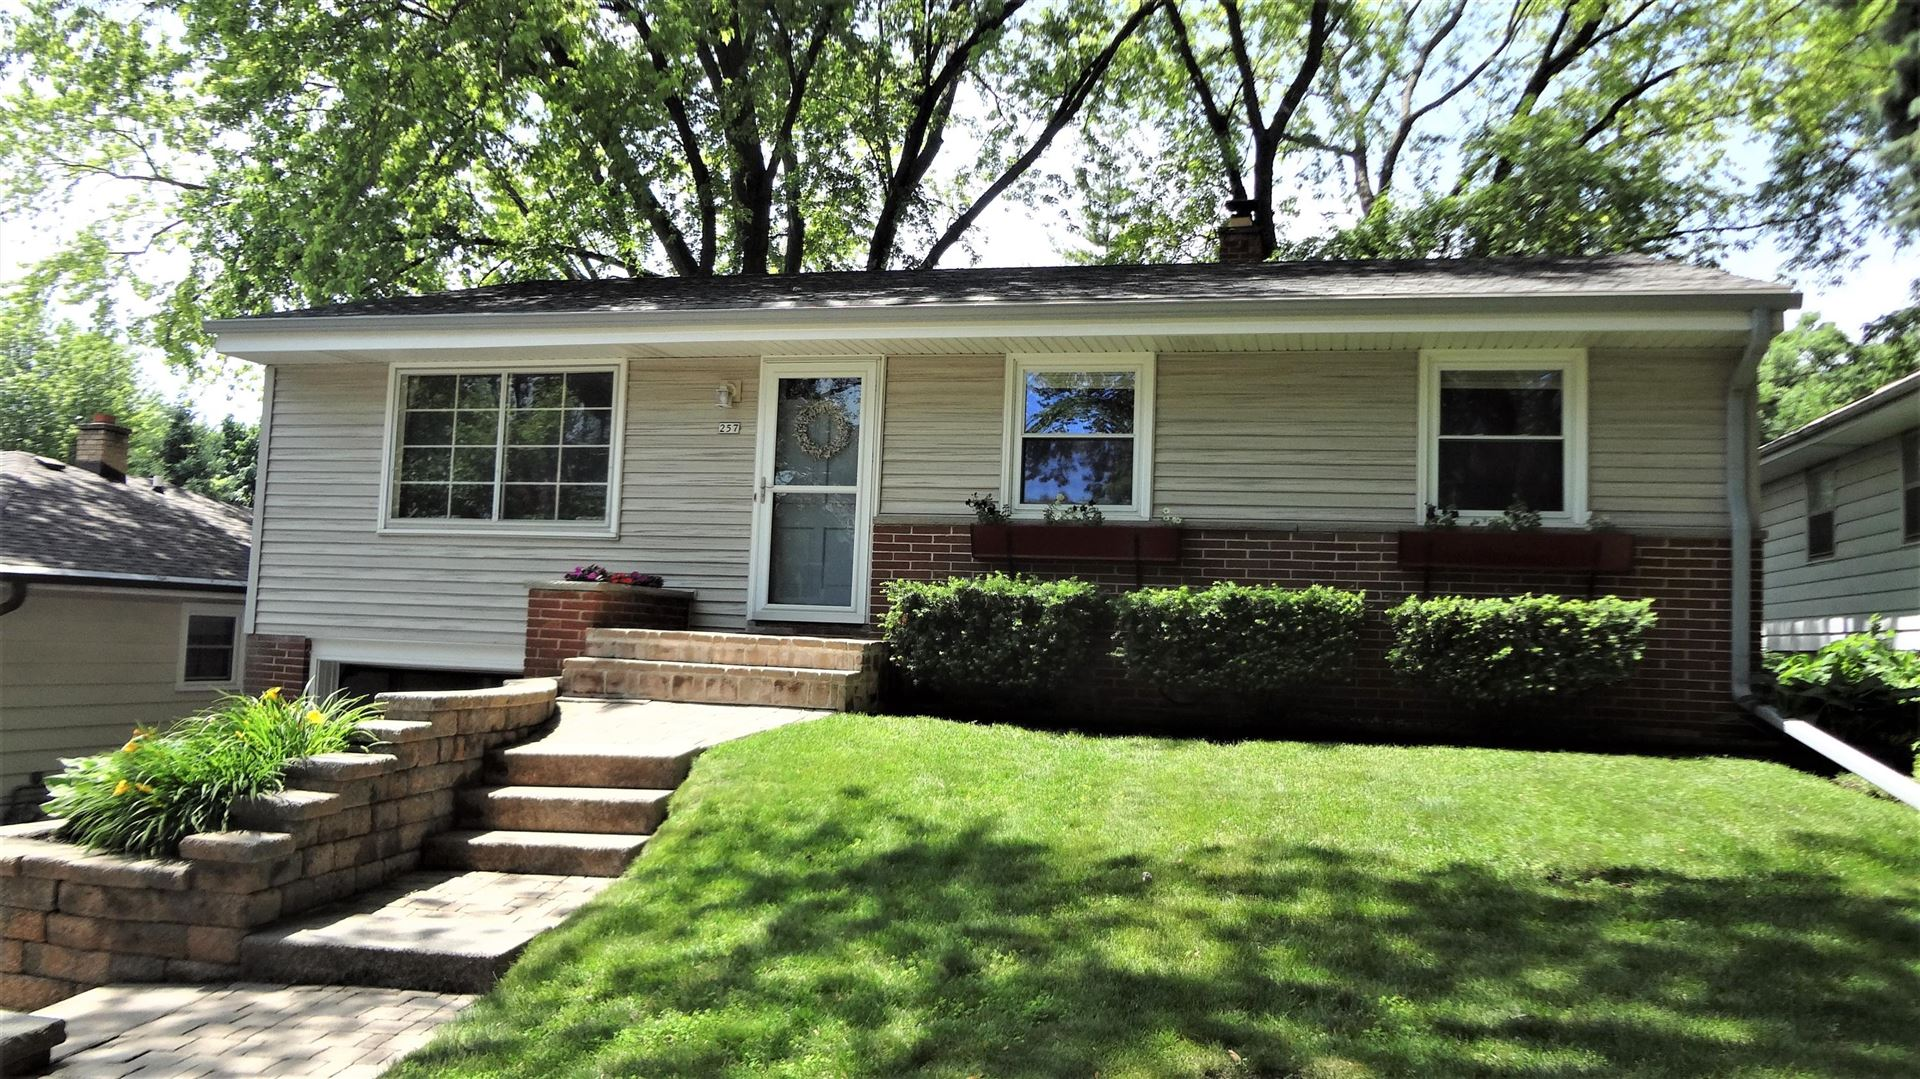 257 N 115th St, Wauwatosa, WI 53226 - #: 1697089